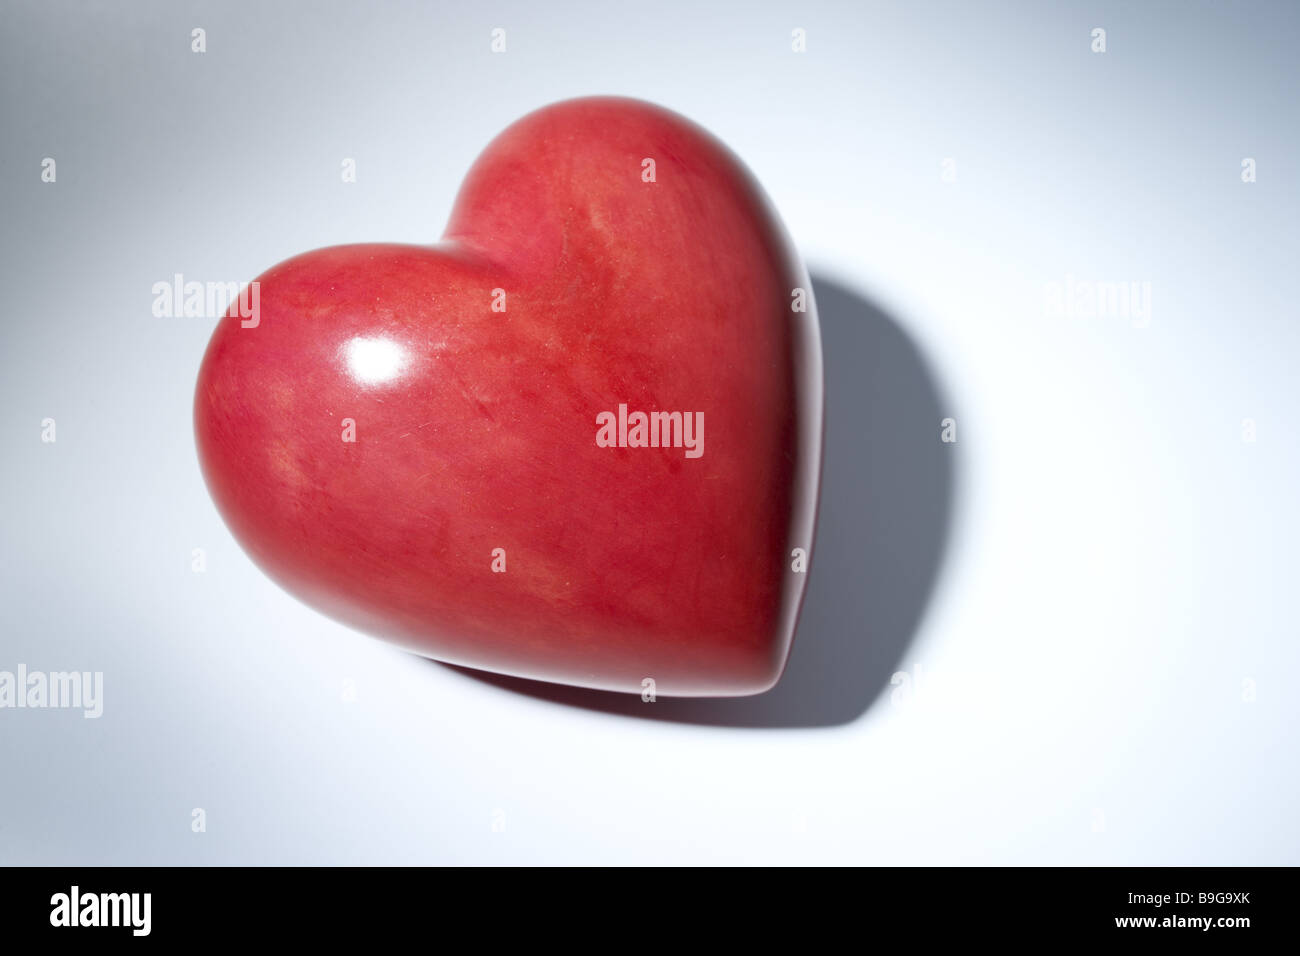 Entrusts paperweights feeling coldness gift ground smoothly brilliantly hard hard-hearted heart heart of stone heart - Stock Image